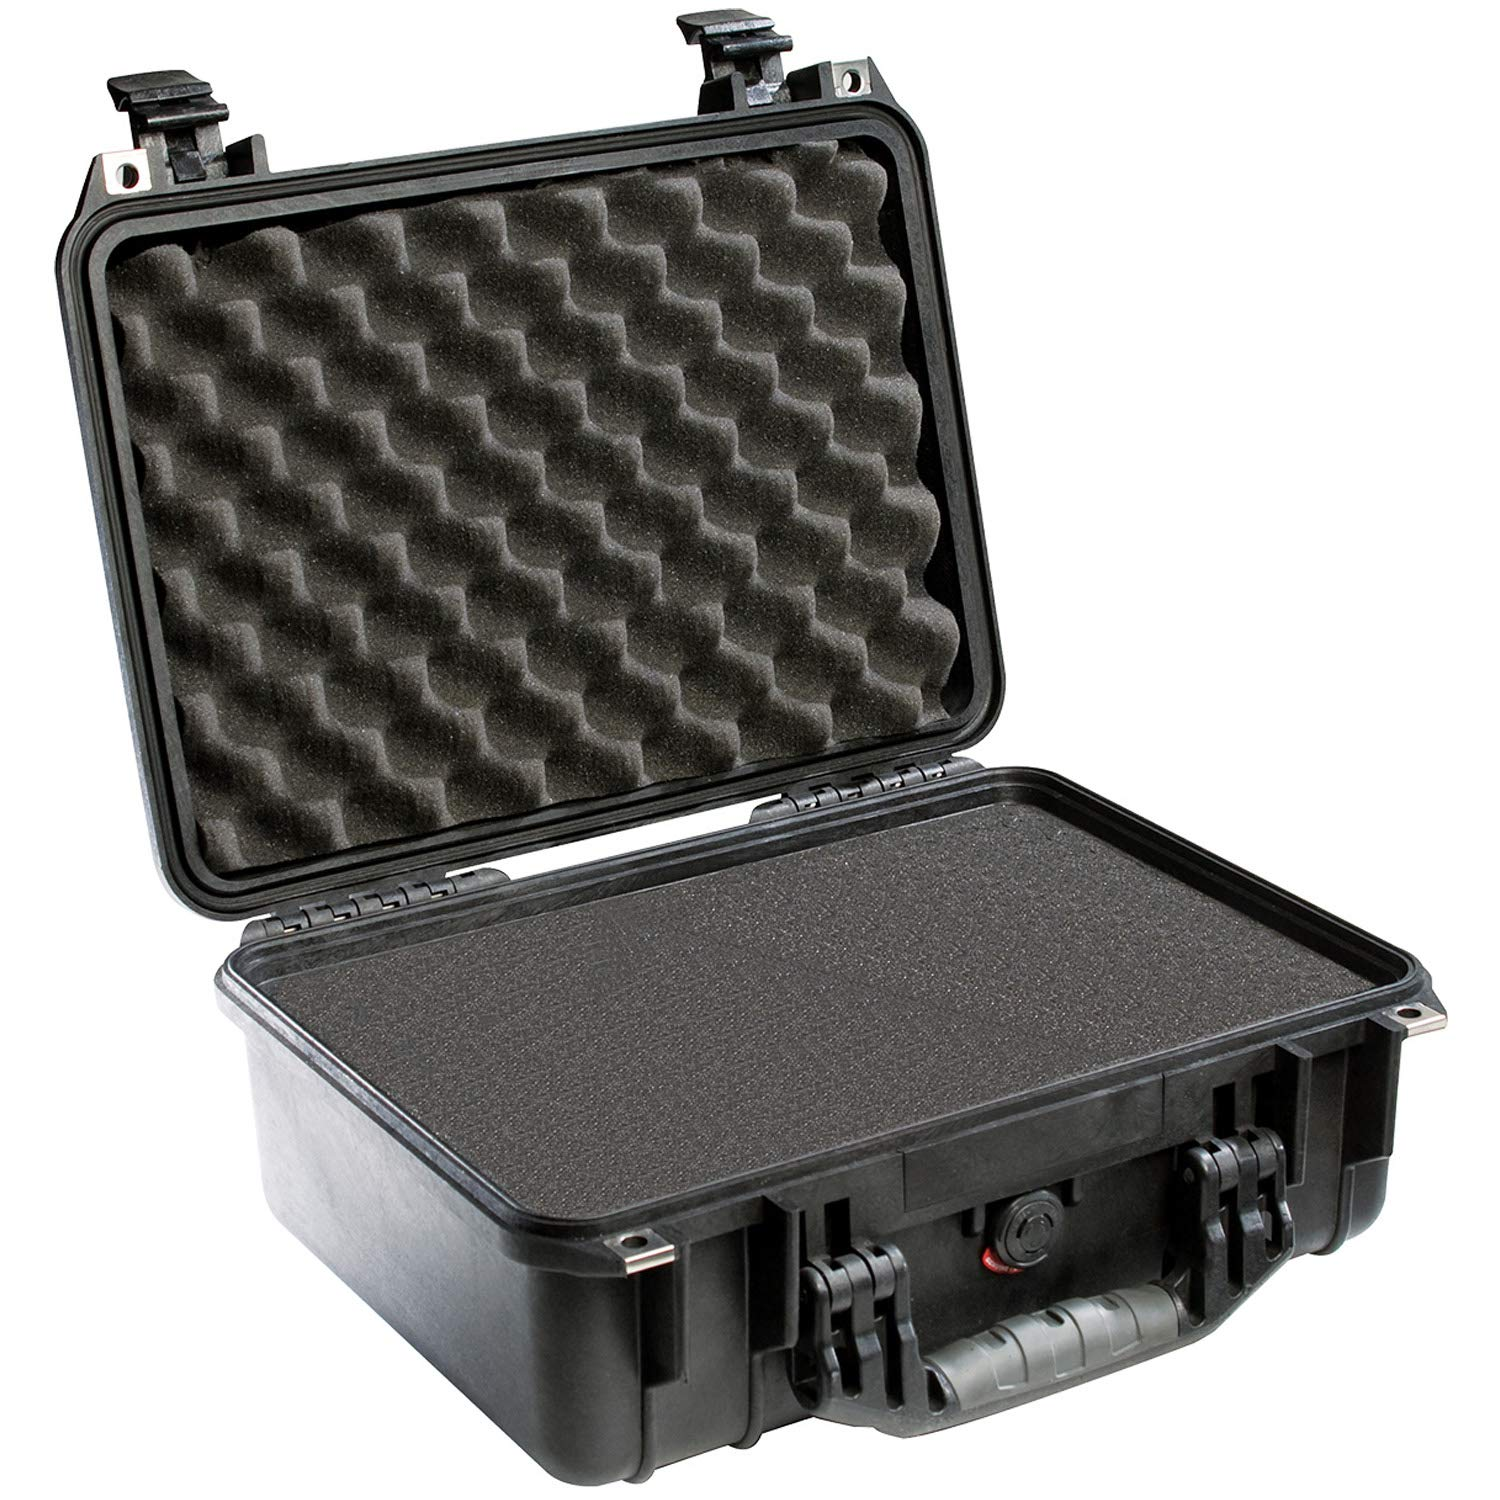 Pelican 1450 Case With Foam (Black) by Pelican